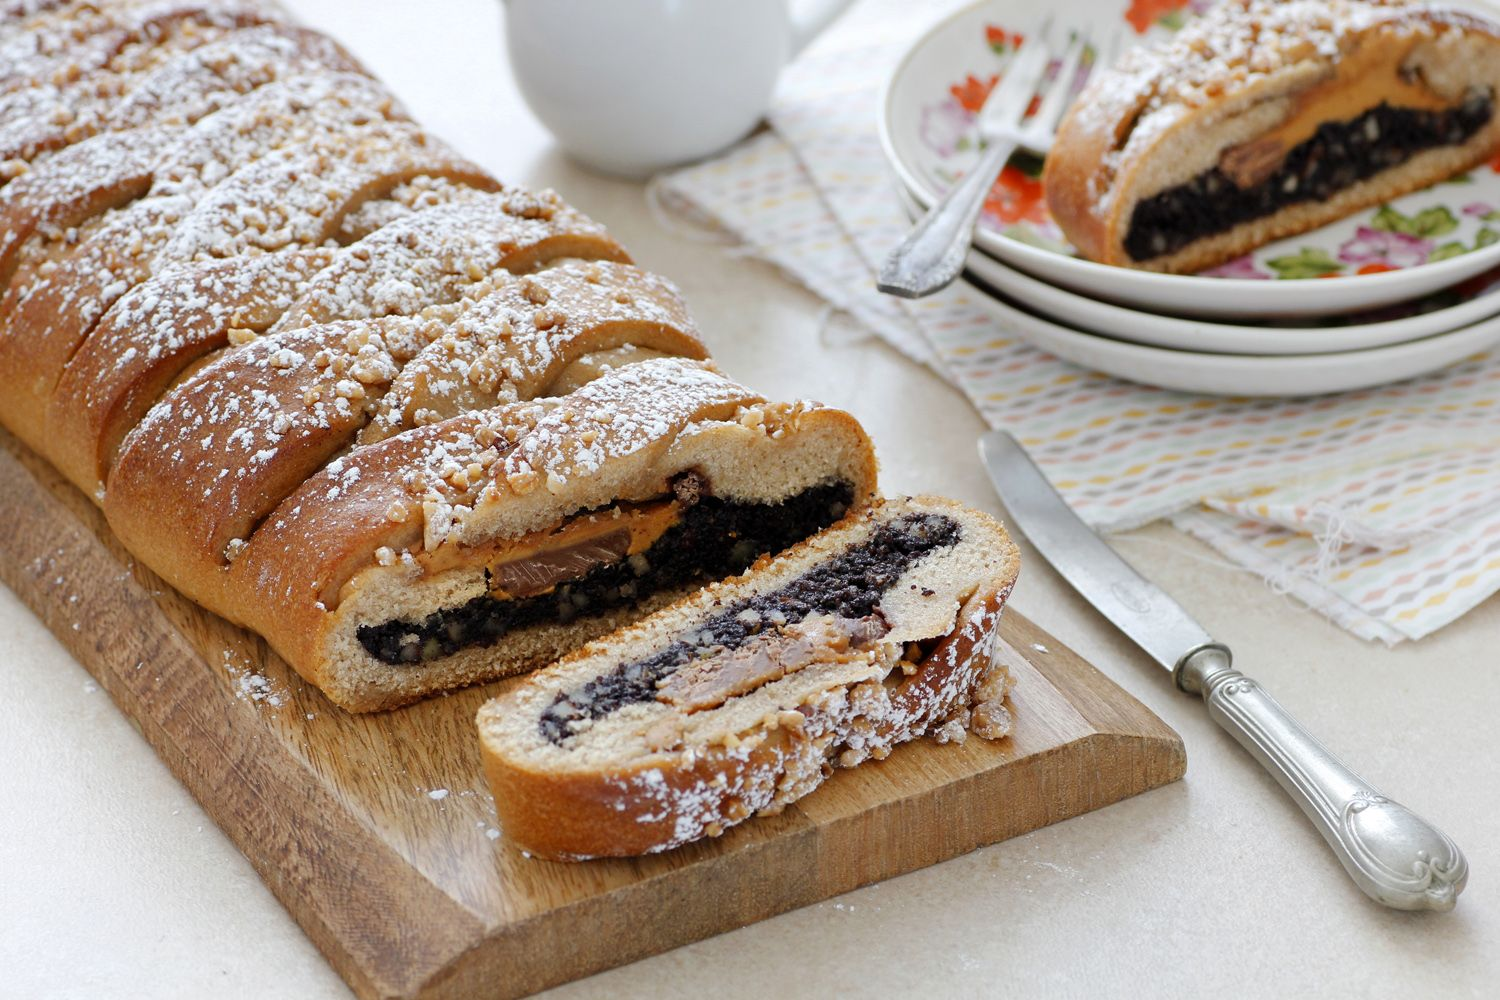 Poppy Seeds Babka Braid with Chocolate and Peanut Butter